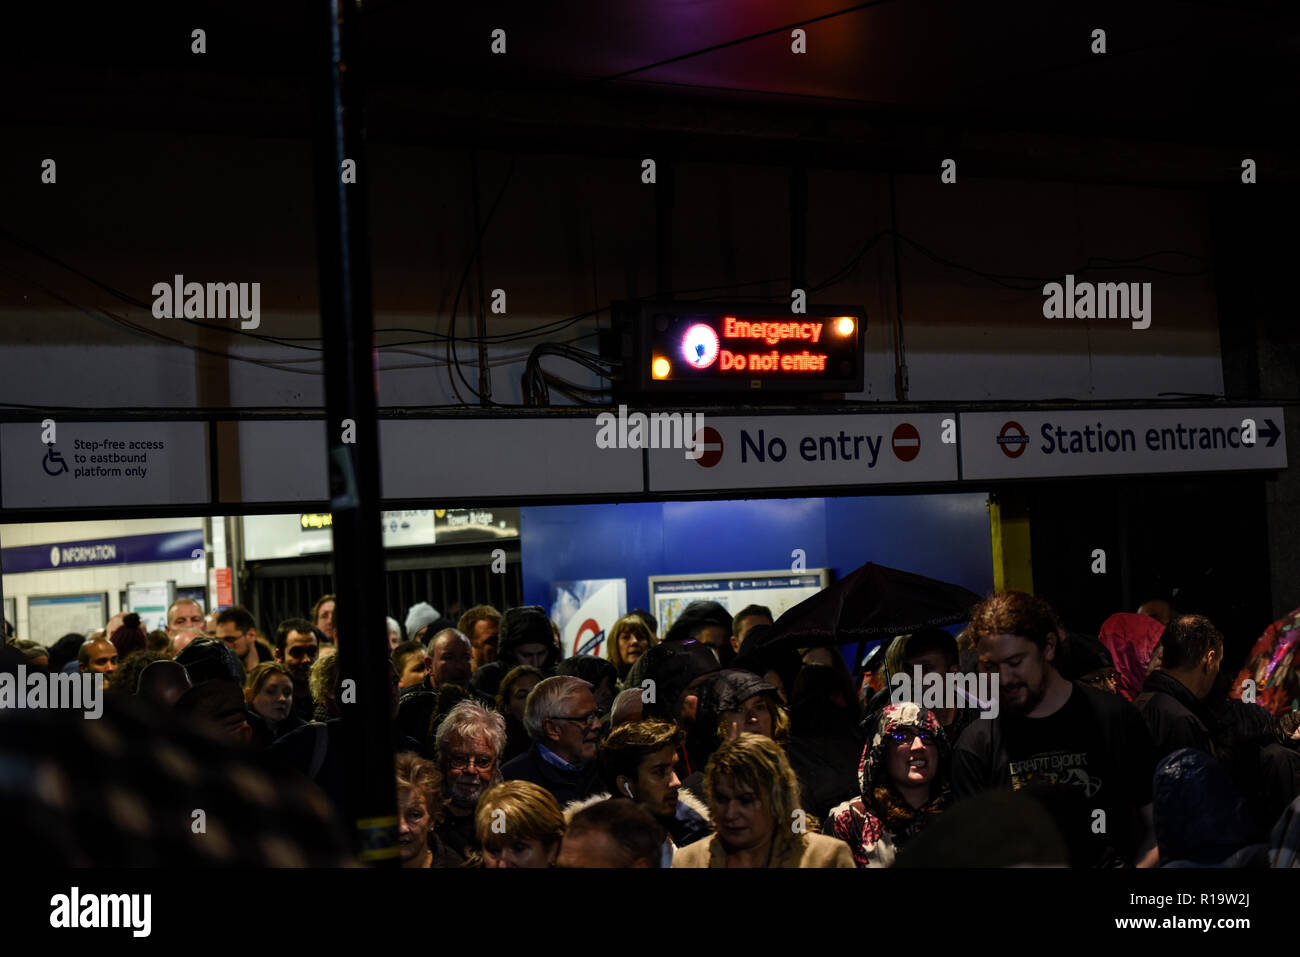 Tower Hill, London, UK. Adding to the crowd congestion due to the Beyond the Deepening Shadow event at the Tower of London, Tower Hill underground station has been closed due to an emergency - Stock Image